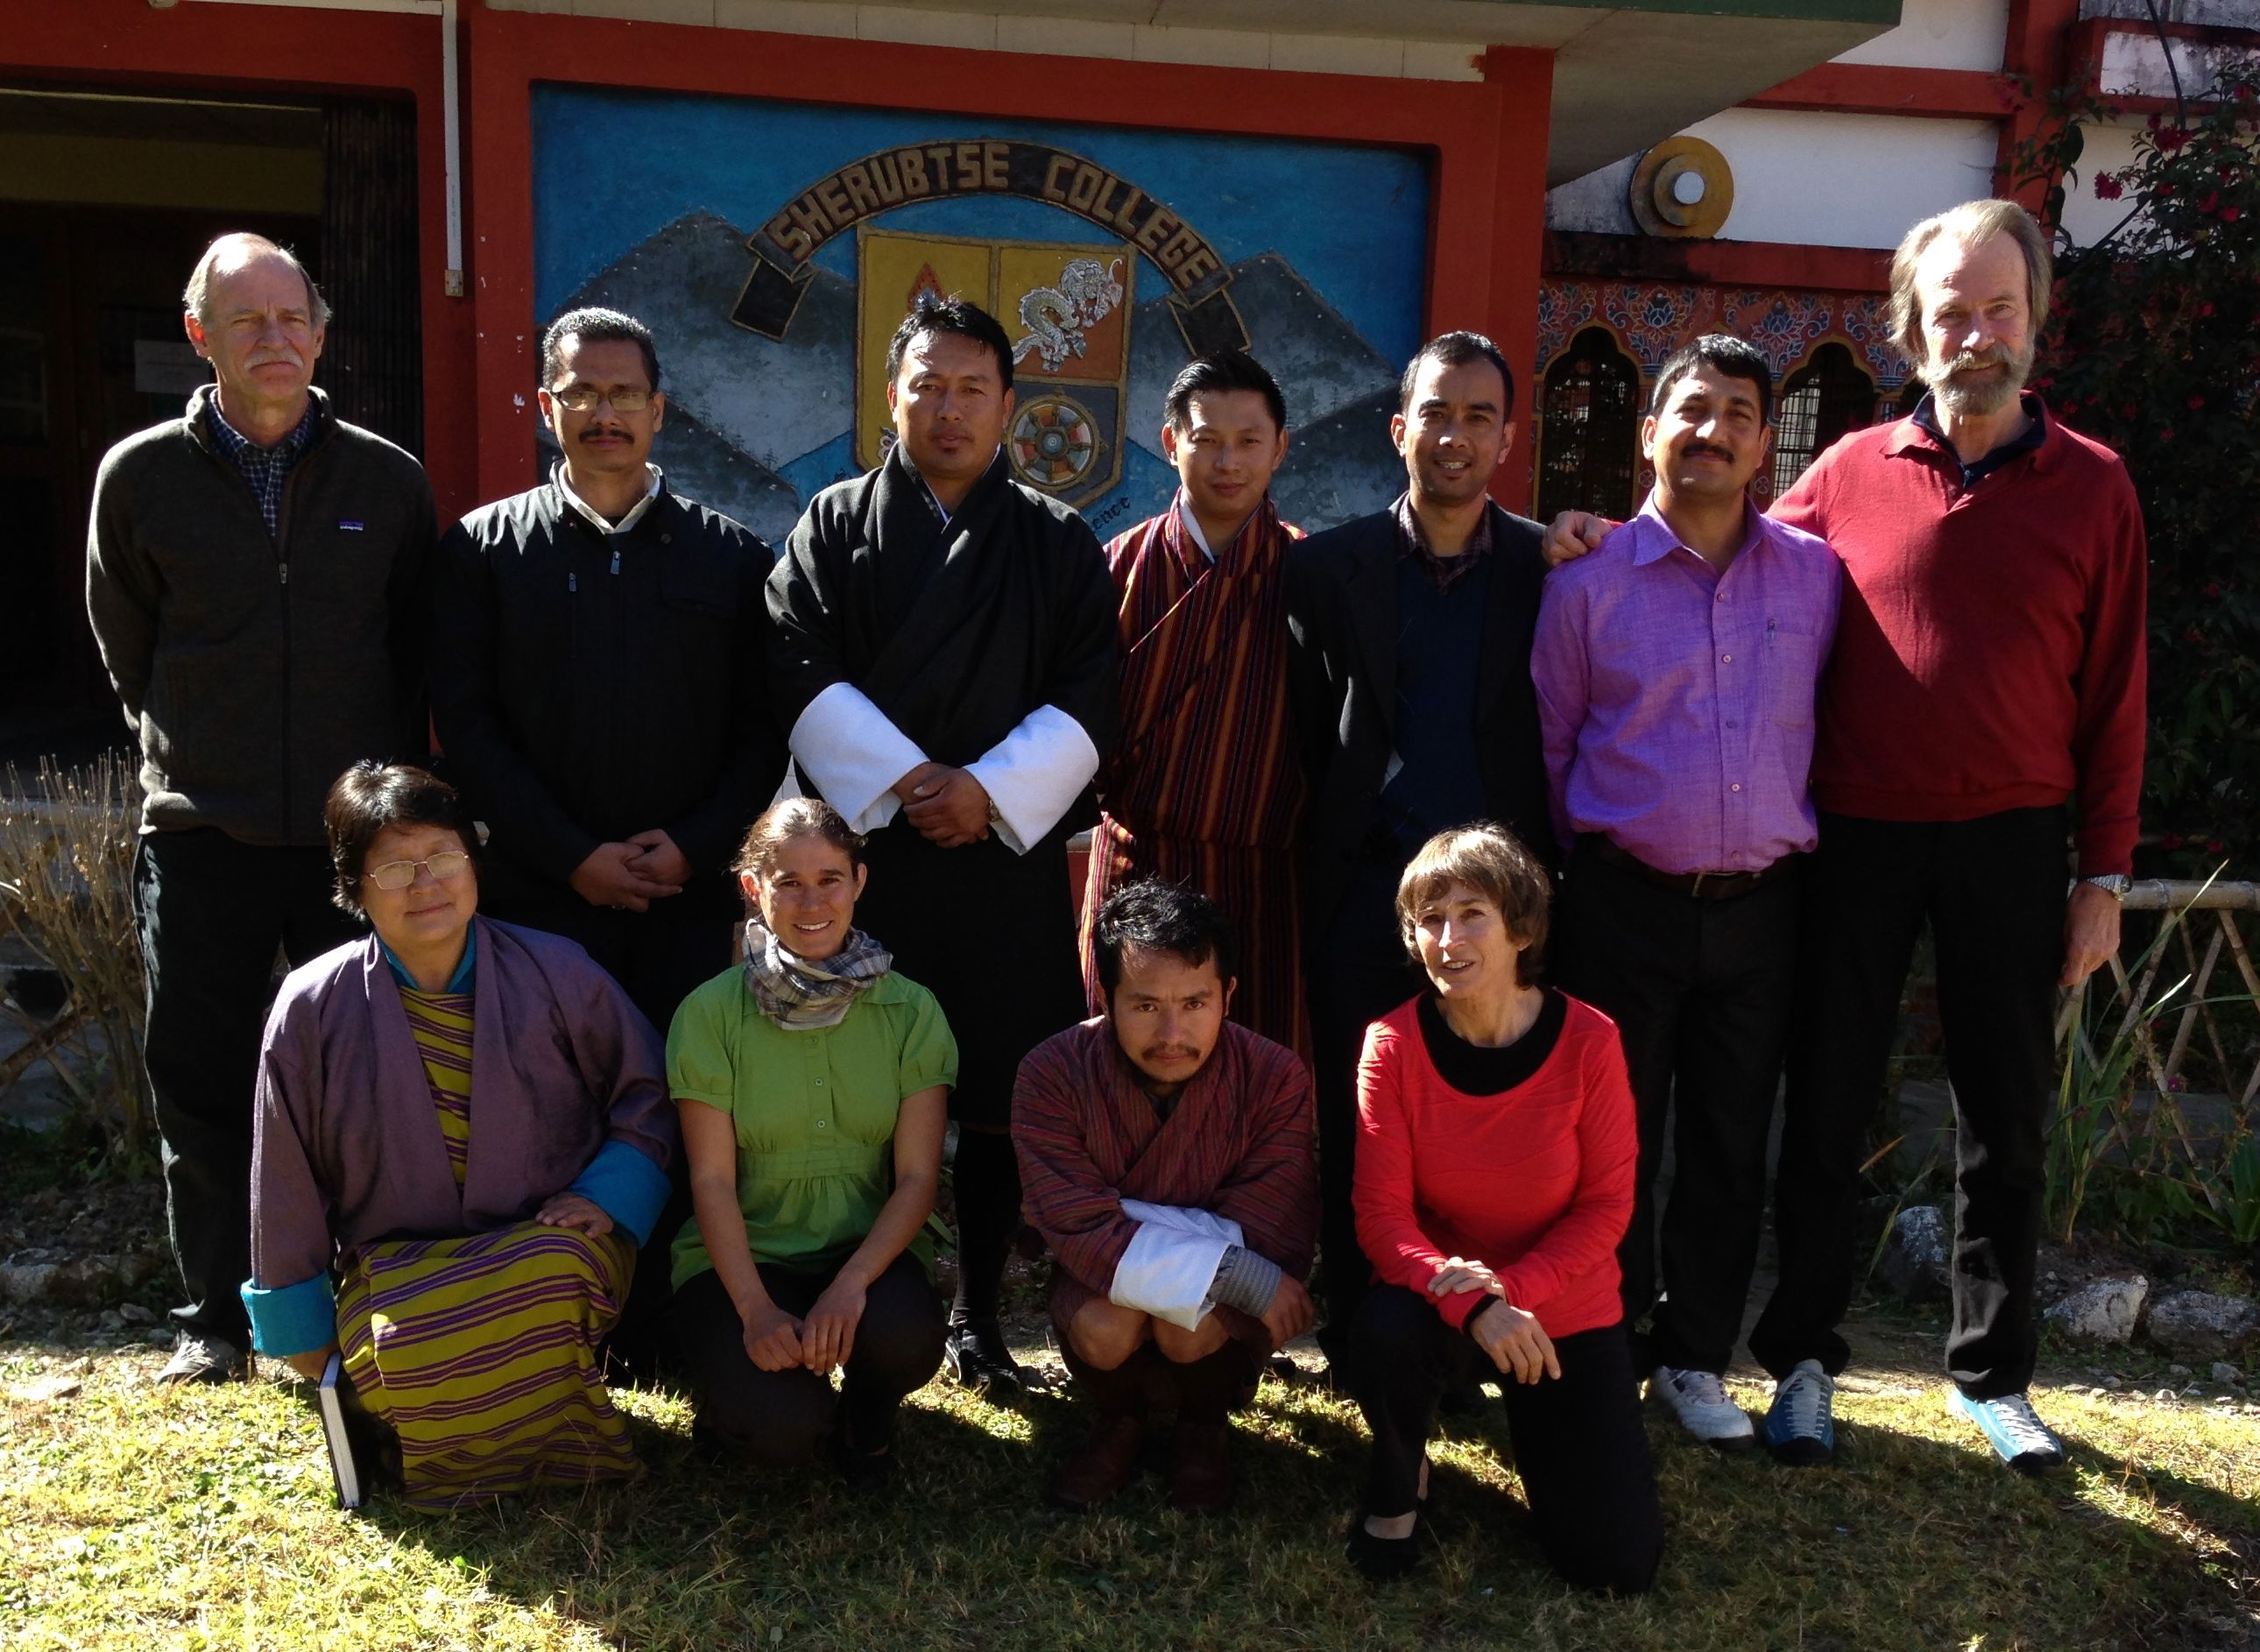 CHARIS team with members of the Center for Climate Change and Spatial Information (CCCSI), Sherubtse College, Royal University of Bhutan, November 23, 2013. Kneeling, left to right: Dr. Sonam Wangmo, Dean of Academic Affairs; Alana Wallace; Pema Lhendrup, Lecturer, Department of Geography; Betsy Armstrong Standing, from left to right: Richard Armstrong; Ramakanta Barman, Assistant Professor, Department of Chemistry; Tshering Wangdi, Director; Sonam Chogyel, Dean of Research and Industrial Linkages; Pankaj Thapa, Assistant Professor, Department of Geography and Coordinator, CCCSI; Dharmendra Chaudhur, Senior Lecturer, Geography and Planning; Koni Steffen, WSL